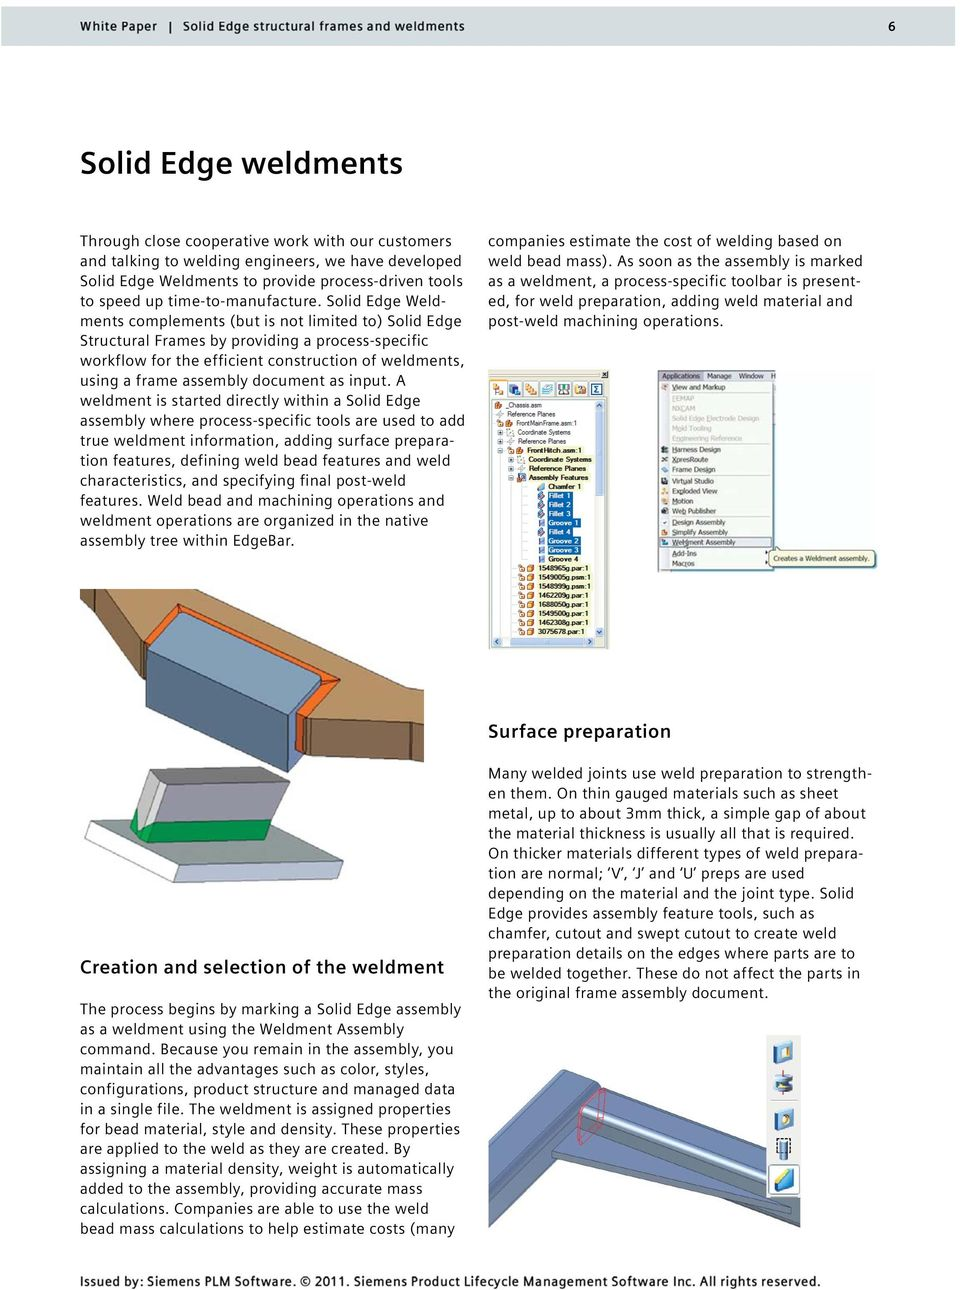 Solid Edge Weldments complements (but is not limited to) Solid Edge Structural Frames by providing a process-specific workflow for the efficient construction of weldments, using a frame assembly